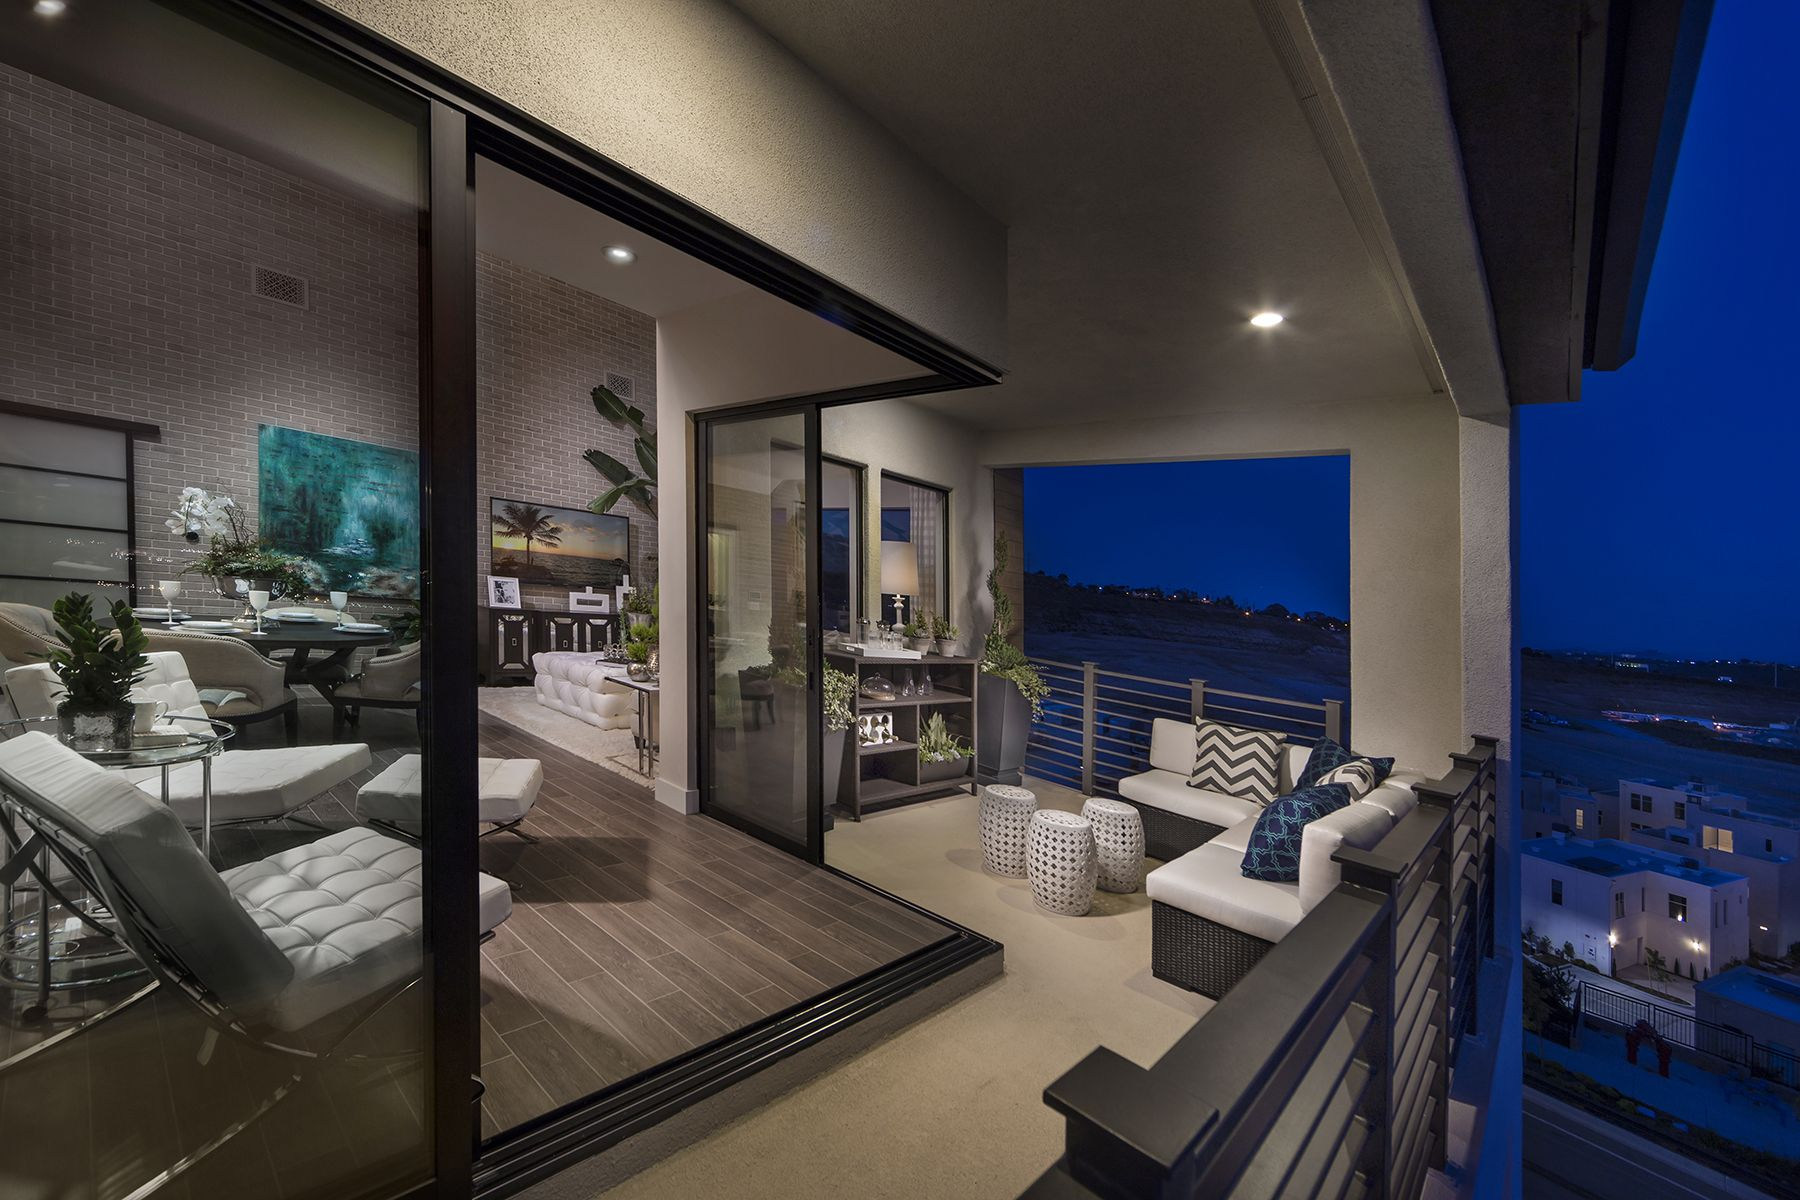 Plan 2 penthouse loft style living lucent shea homes san diego mission valley civita for Shea homes design center san diego